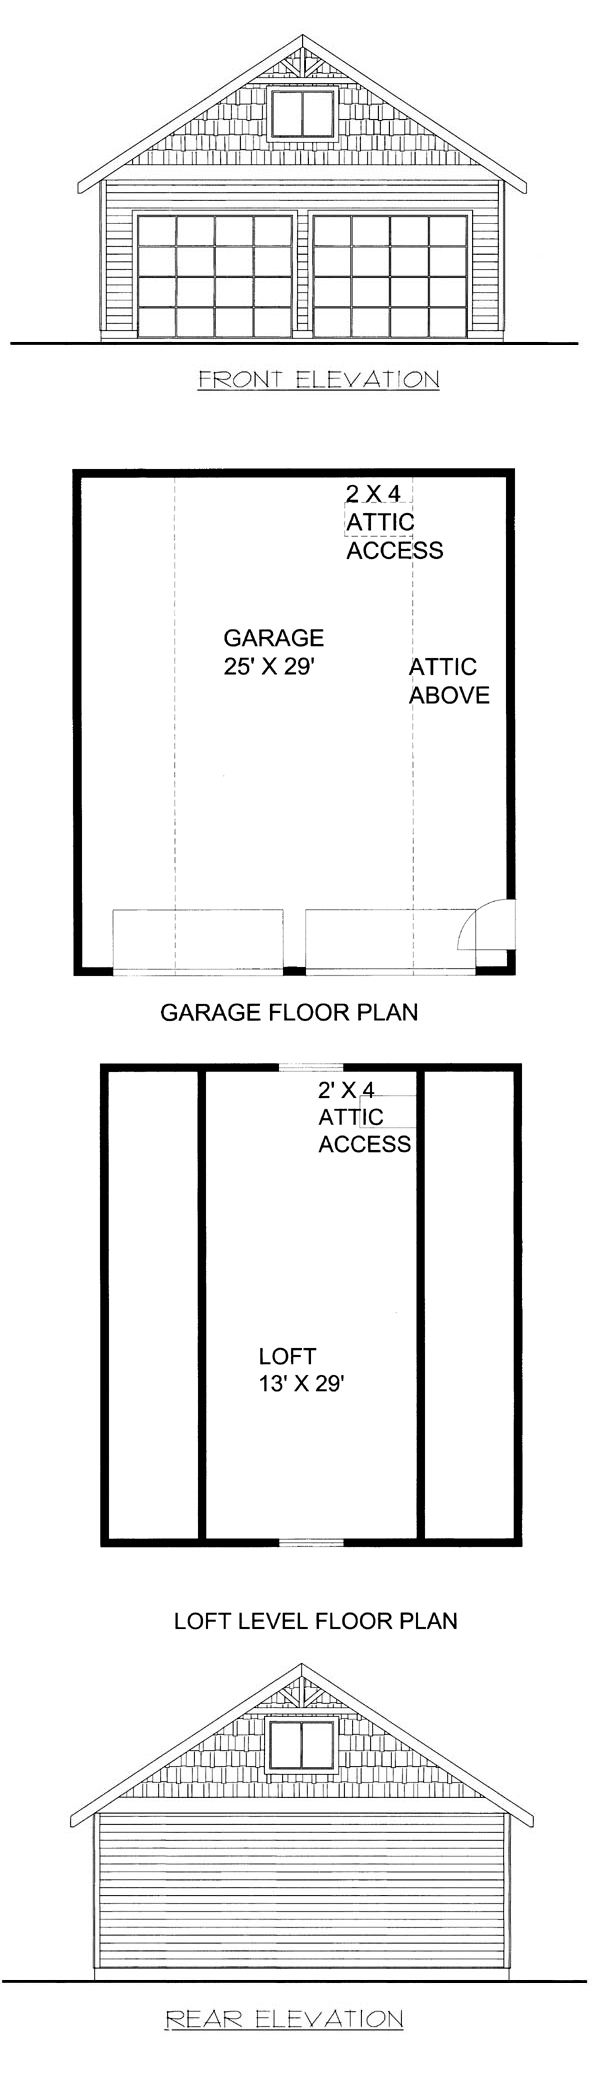 #2Car #Garage Plan 85807 measures 26 feet by 30 feet, with 780 square feet of garage space and a loft with 377 square feet.